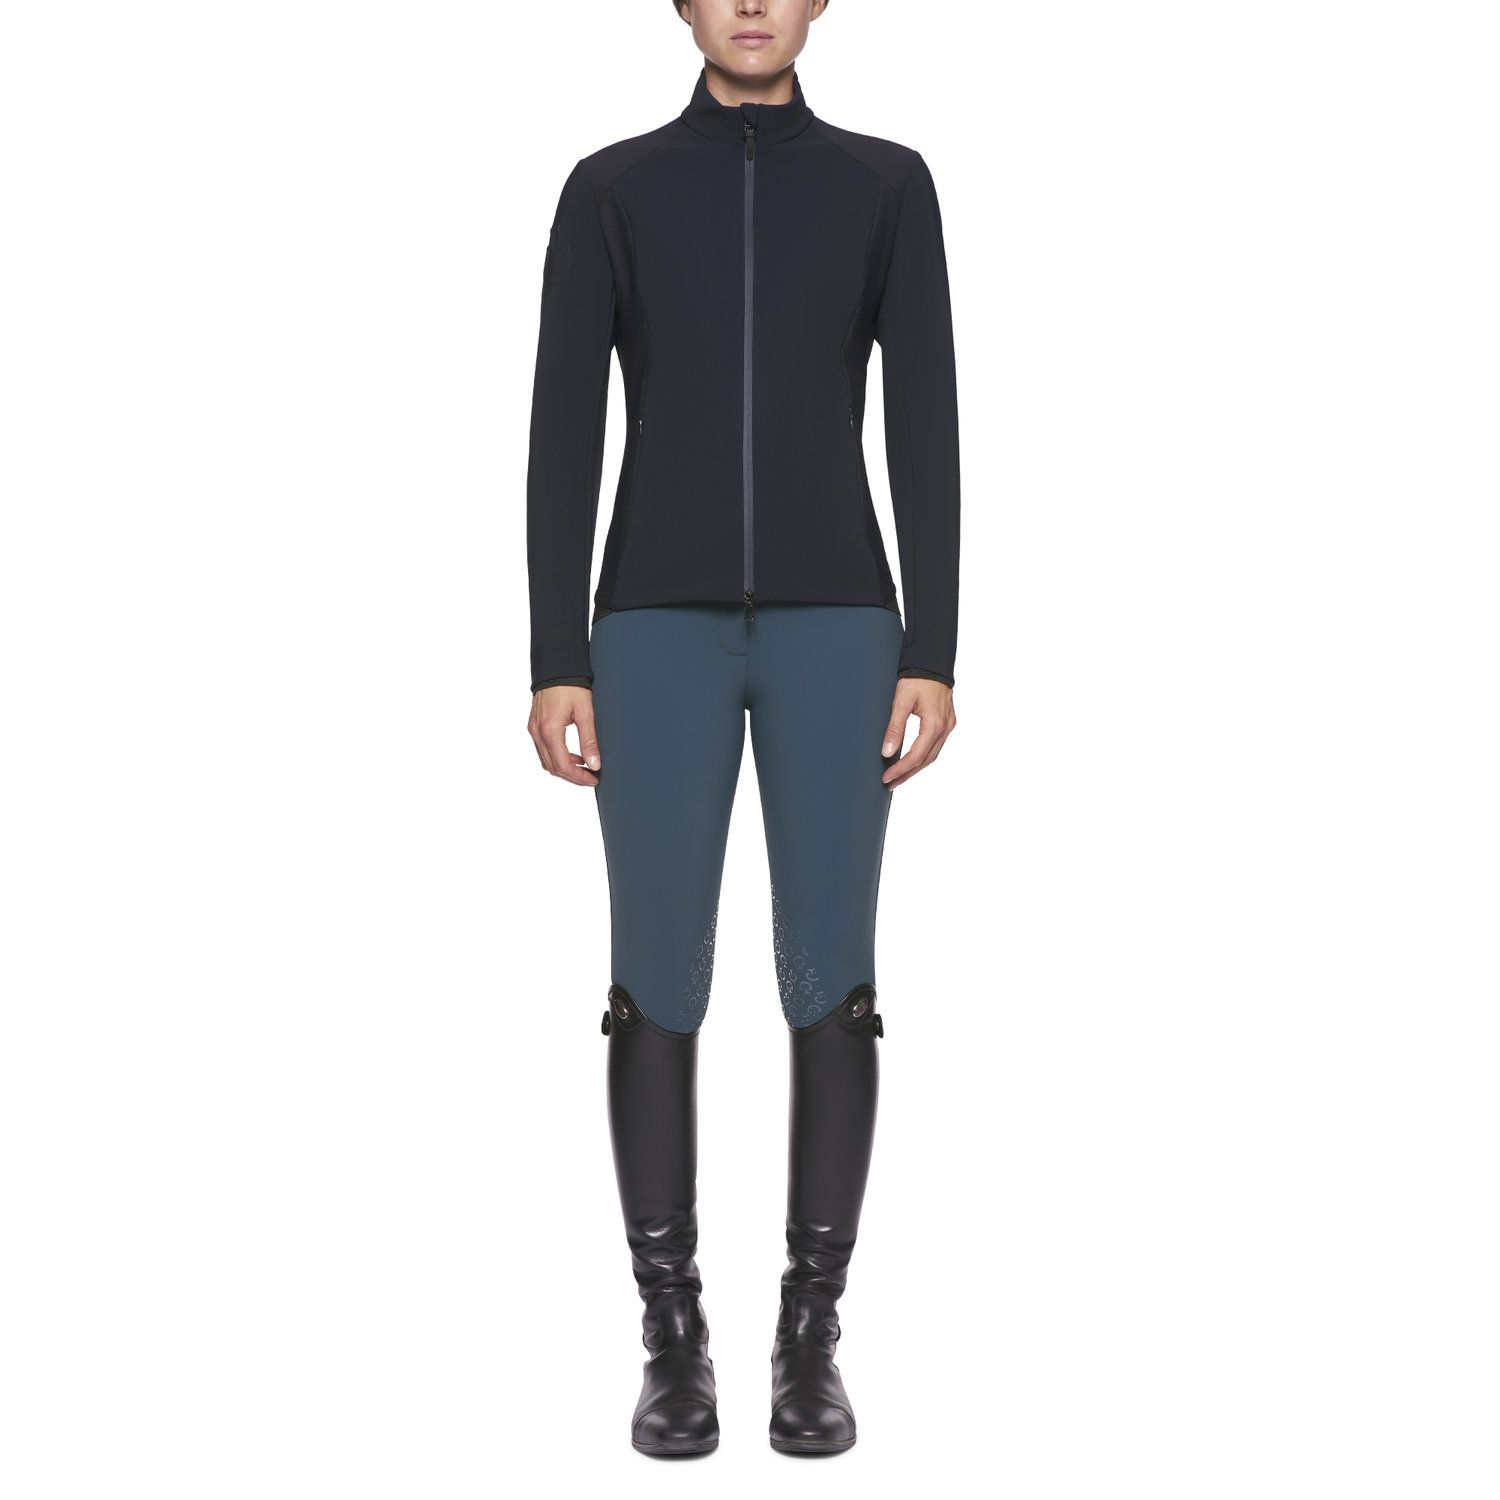 Women's lightweight jersey and piqué jacket